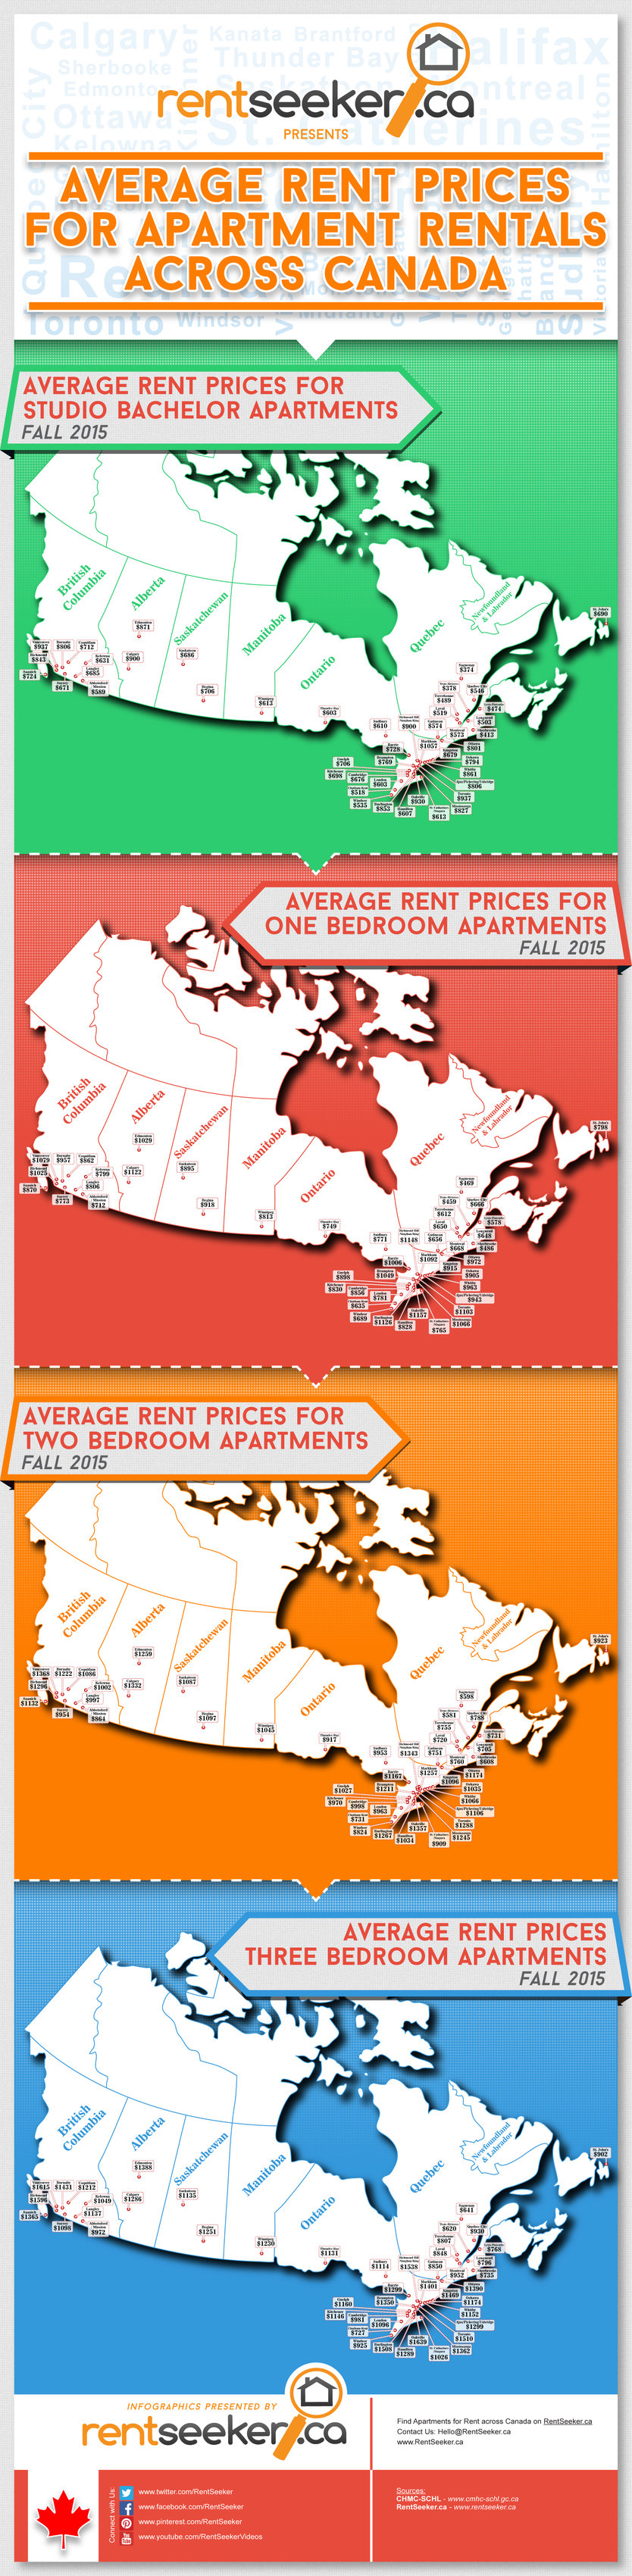 Here's how Calgary rental rates compare to the rest of Canada